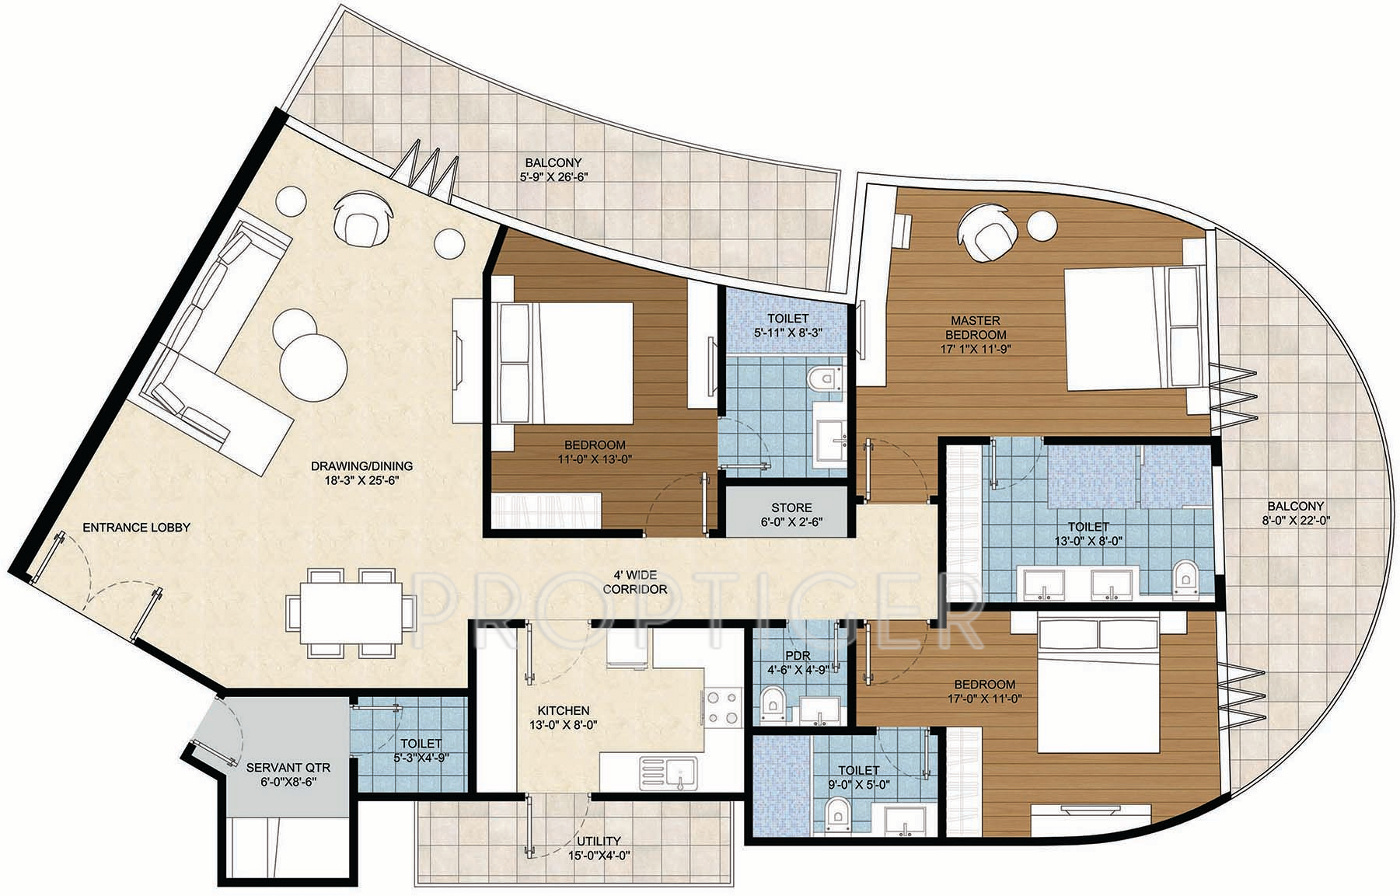 2500 Sq Ft House Plans India House Plans: 2500 sq ft